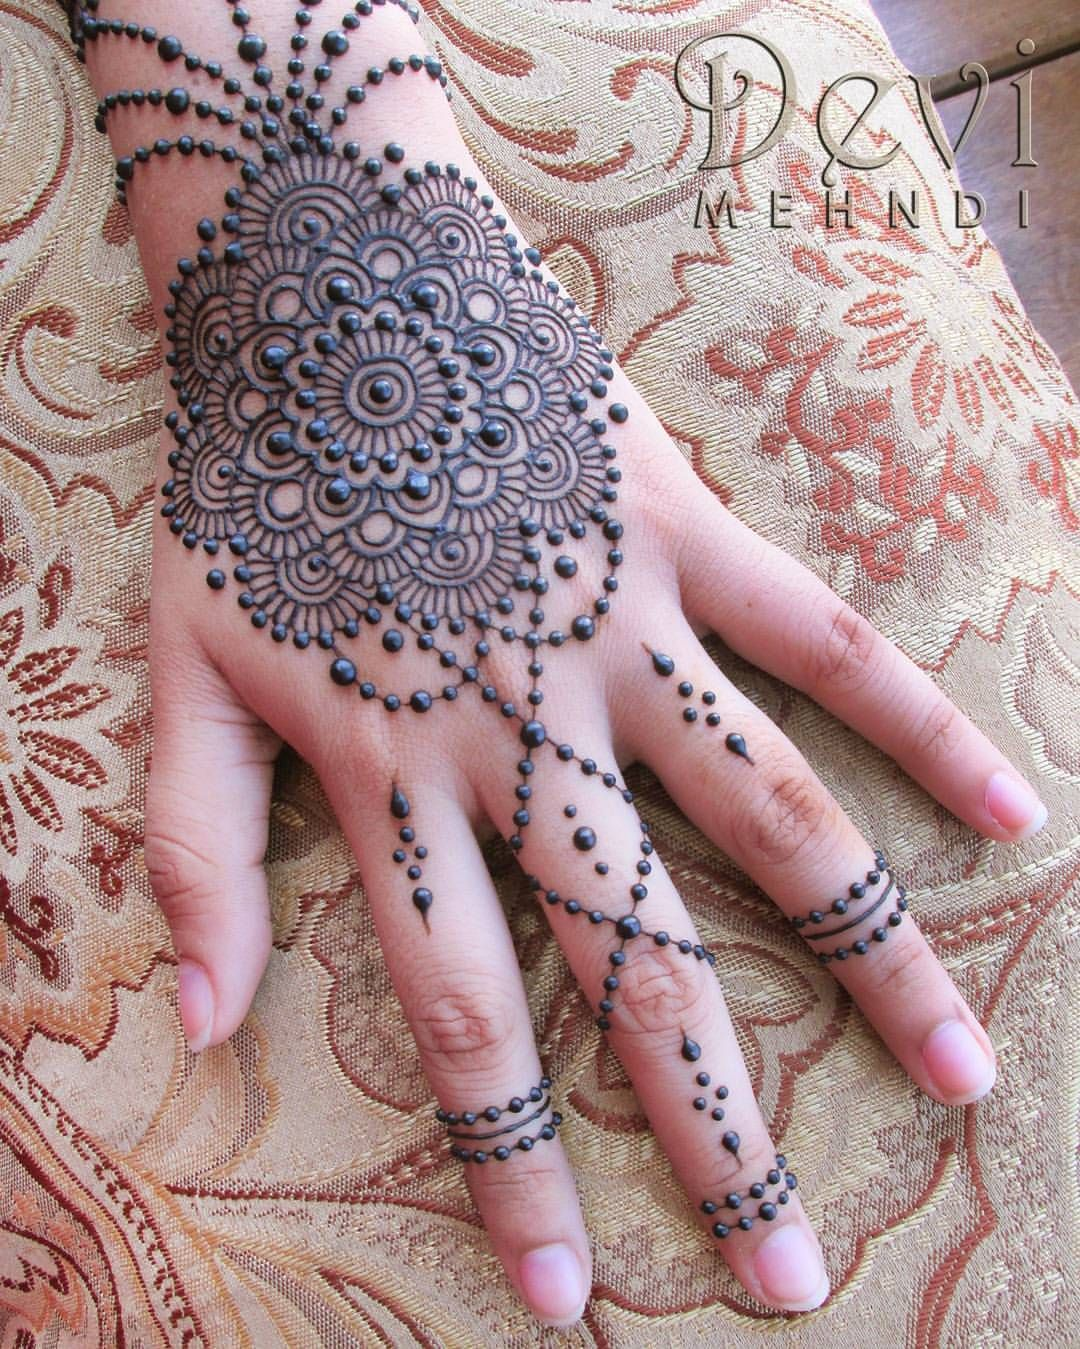 1000 ideas about traditional henna designs on pinterest traditional - Devi Mehndi Henna Mandala On The Back Of The Hand With Lots Of Beaded Chains